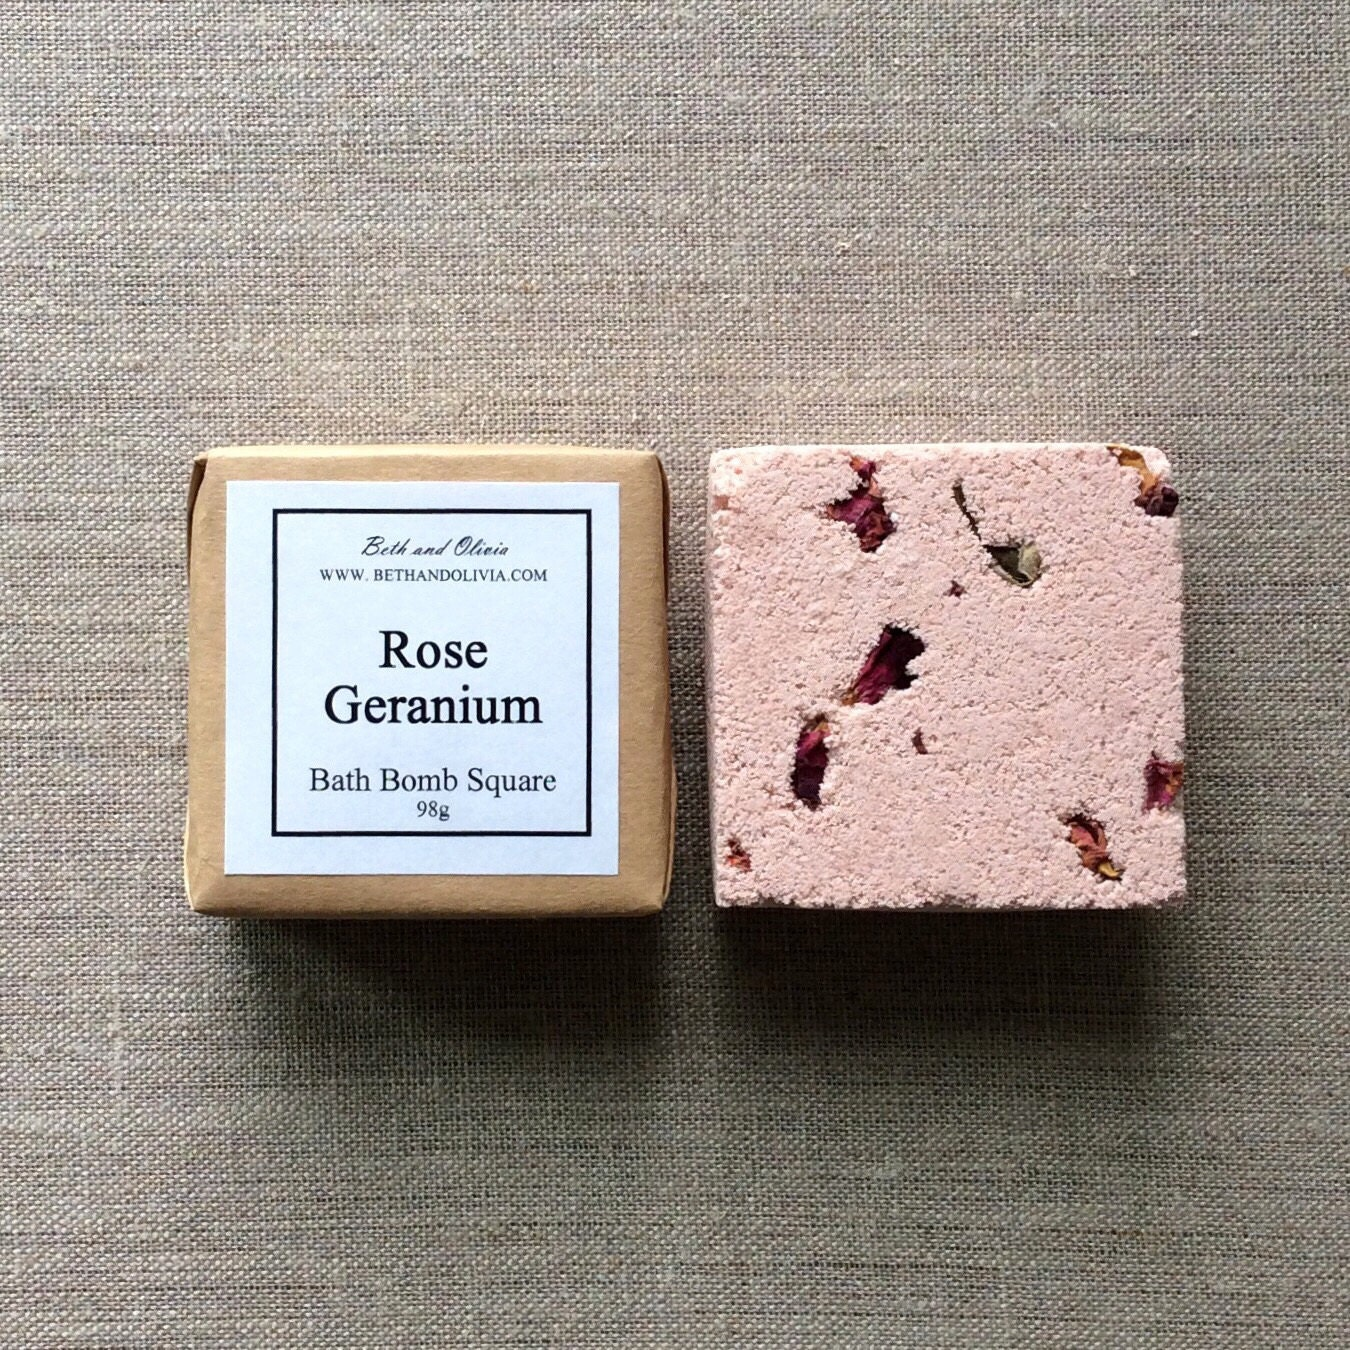 Set of 6 Rose Geranium Bath Bombs, gifts for her, bath bomb squares, bath bombs, Wholesale bath bombs, Rose bath bomb, stocking stuffers